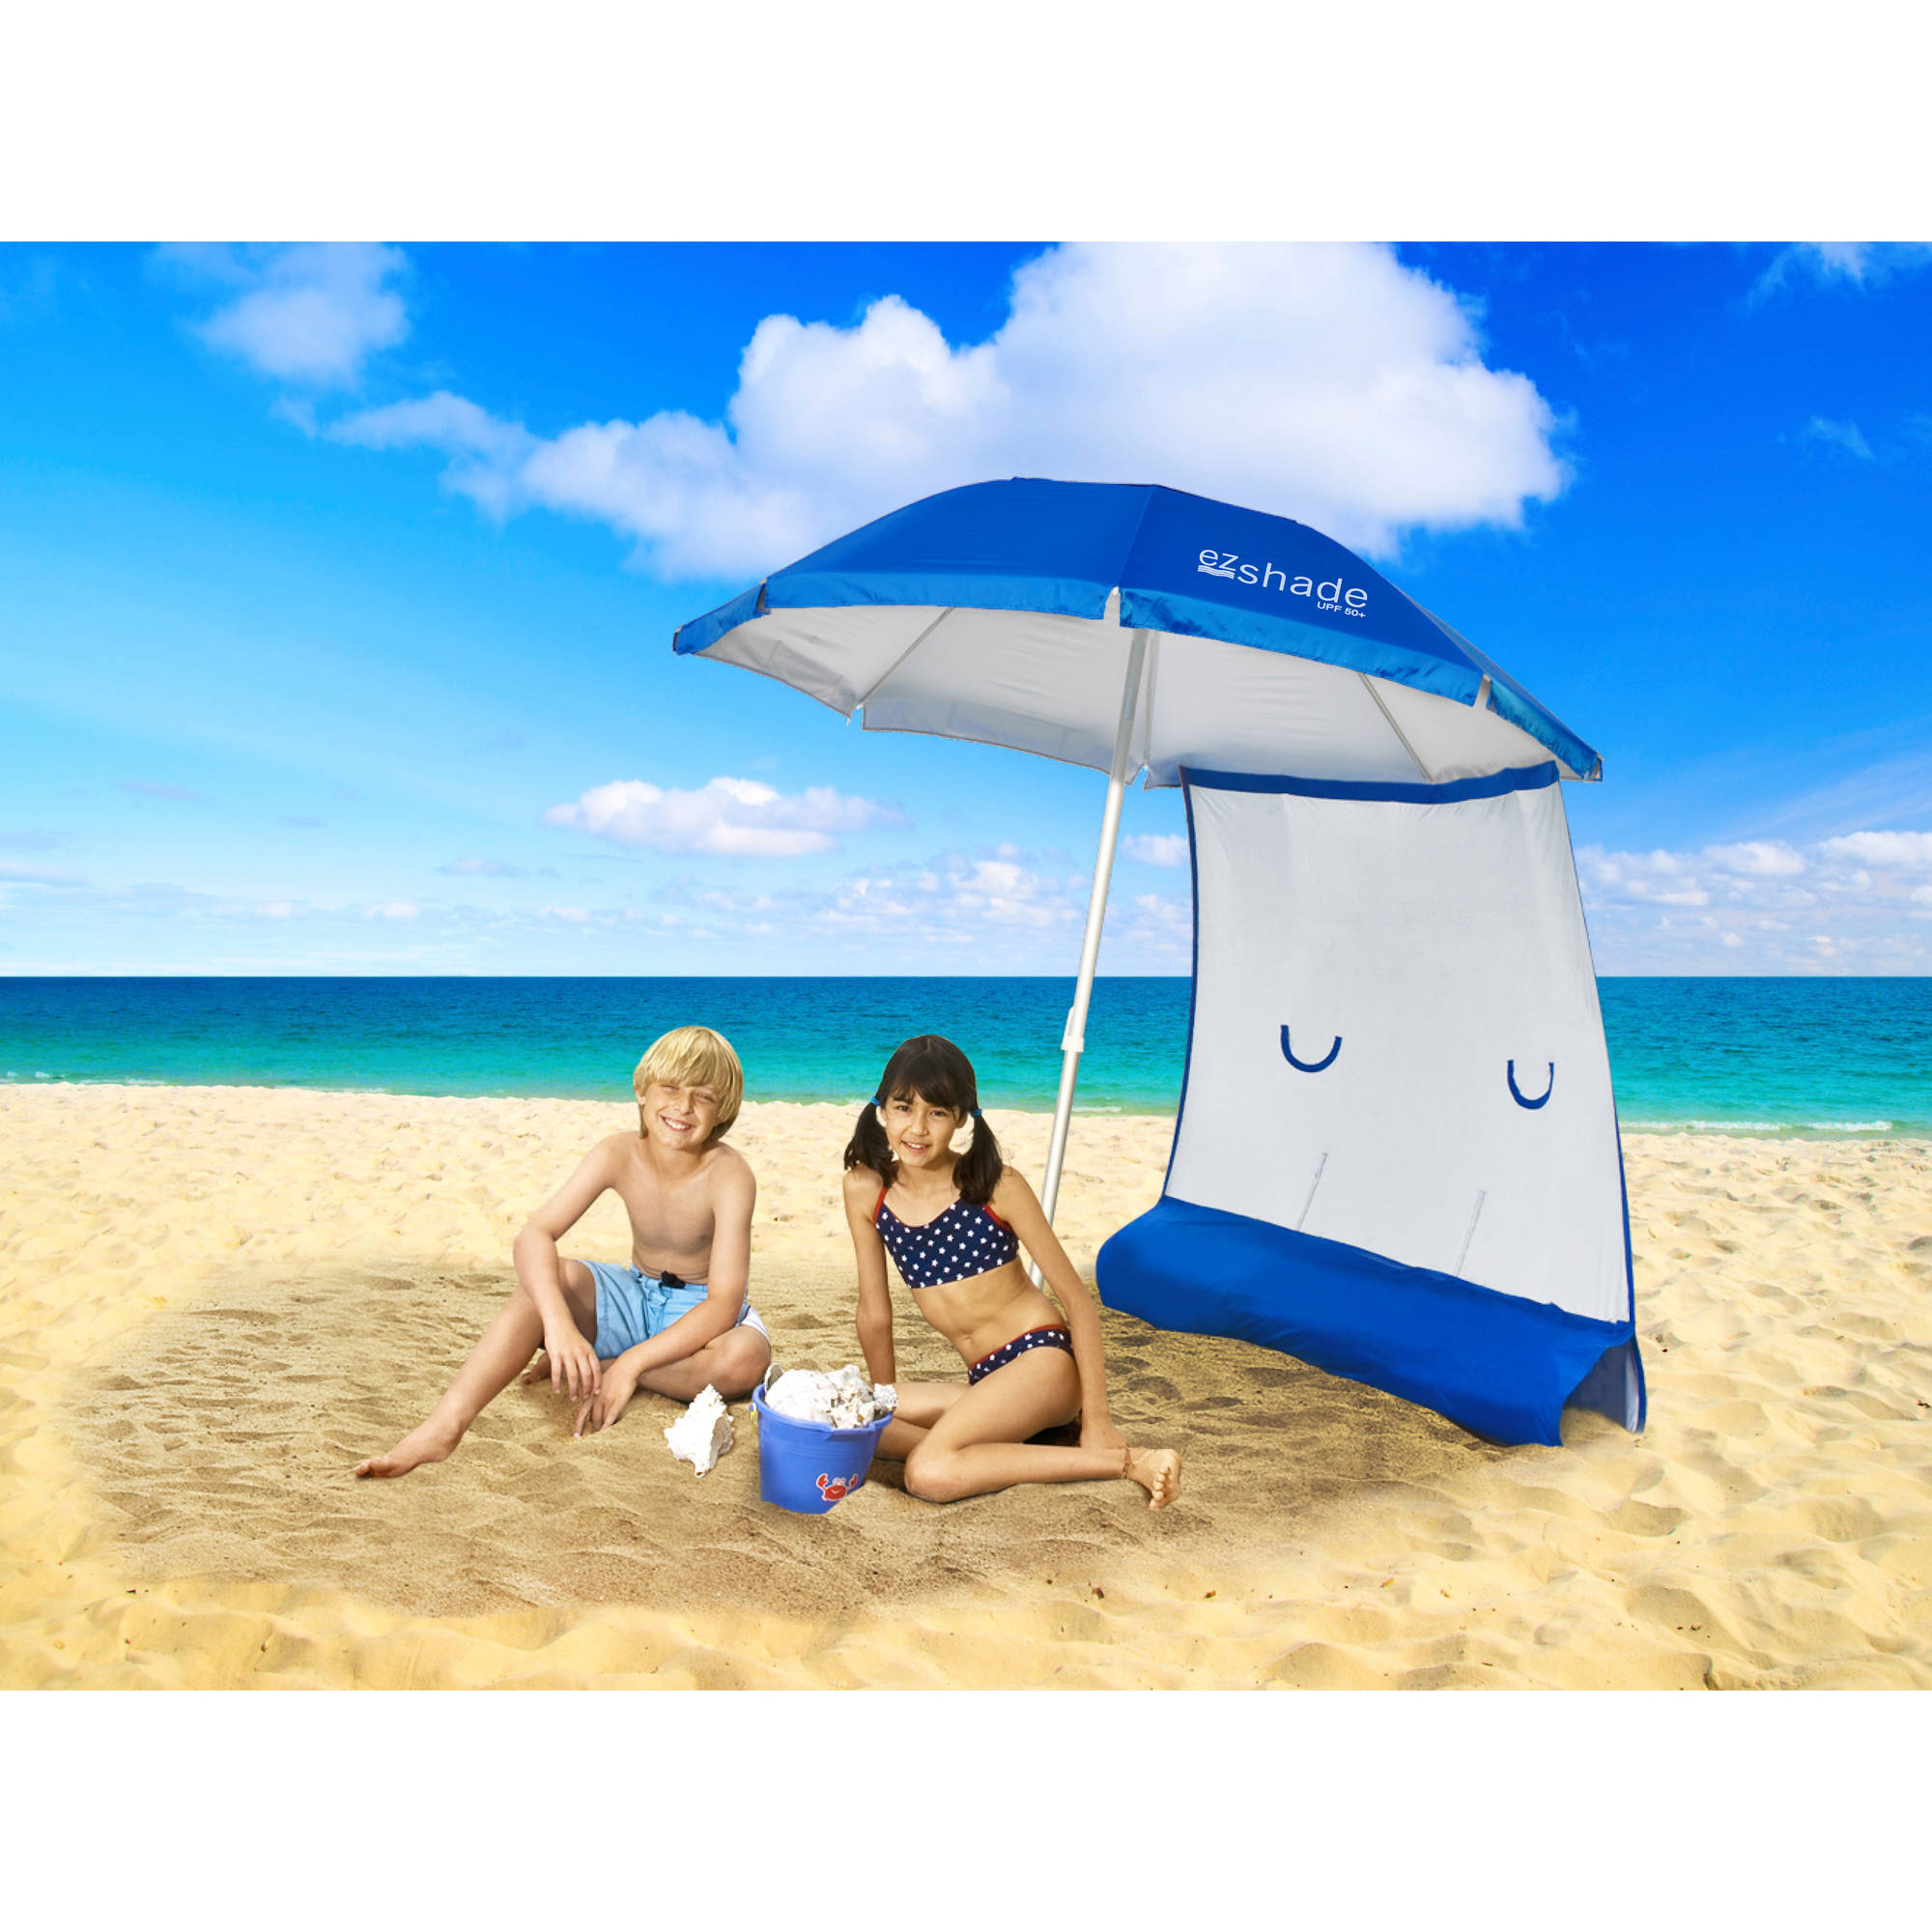 ezShade 7' Beach Umbrella and Sunshield Combo